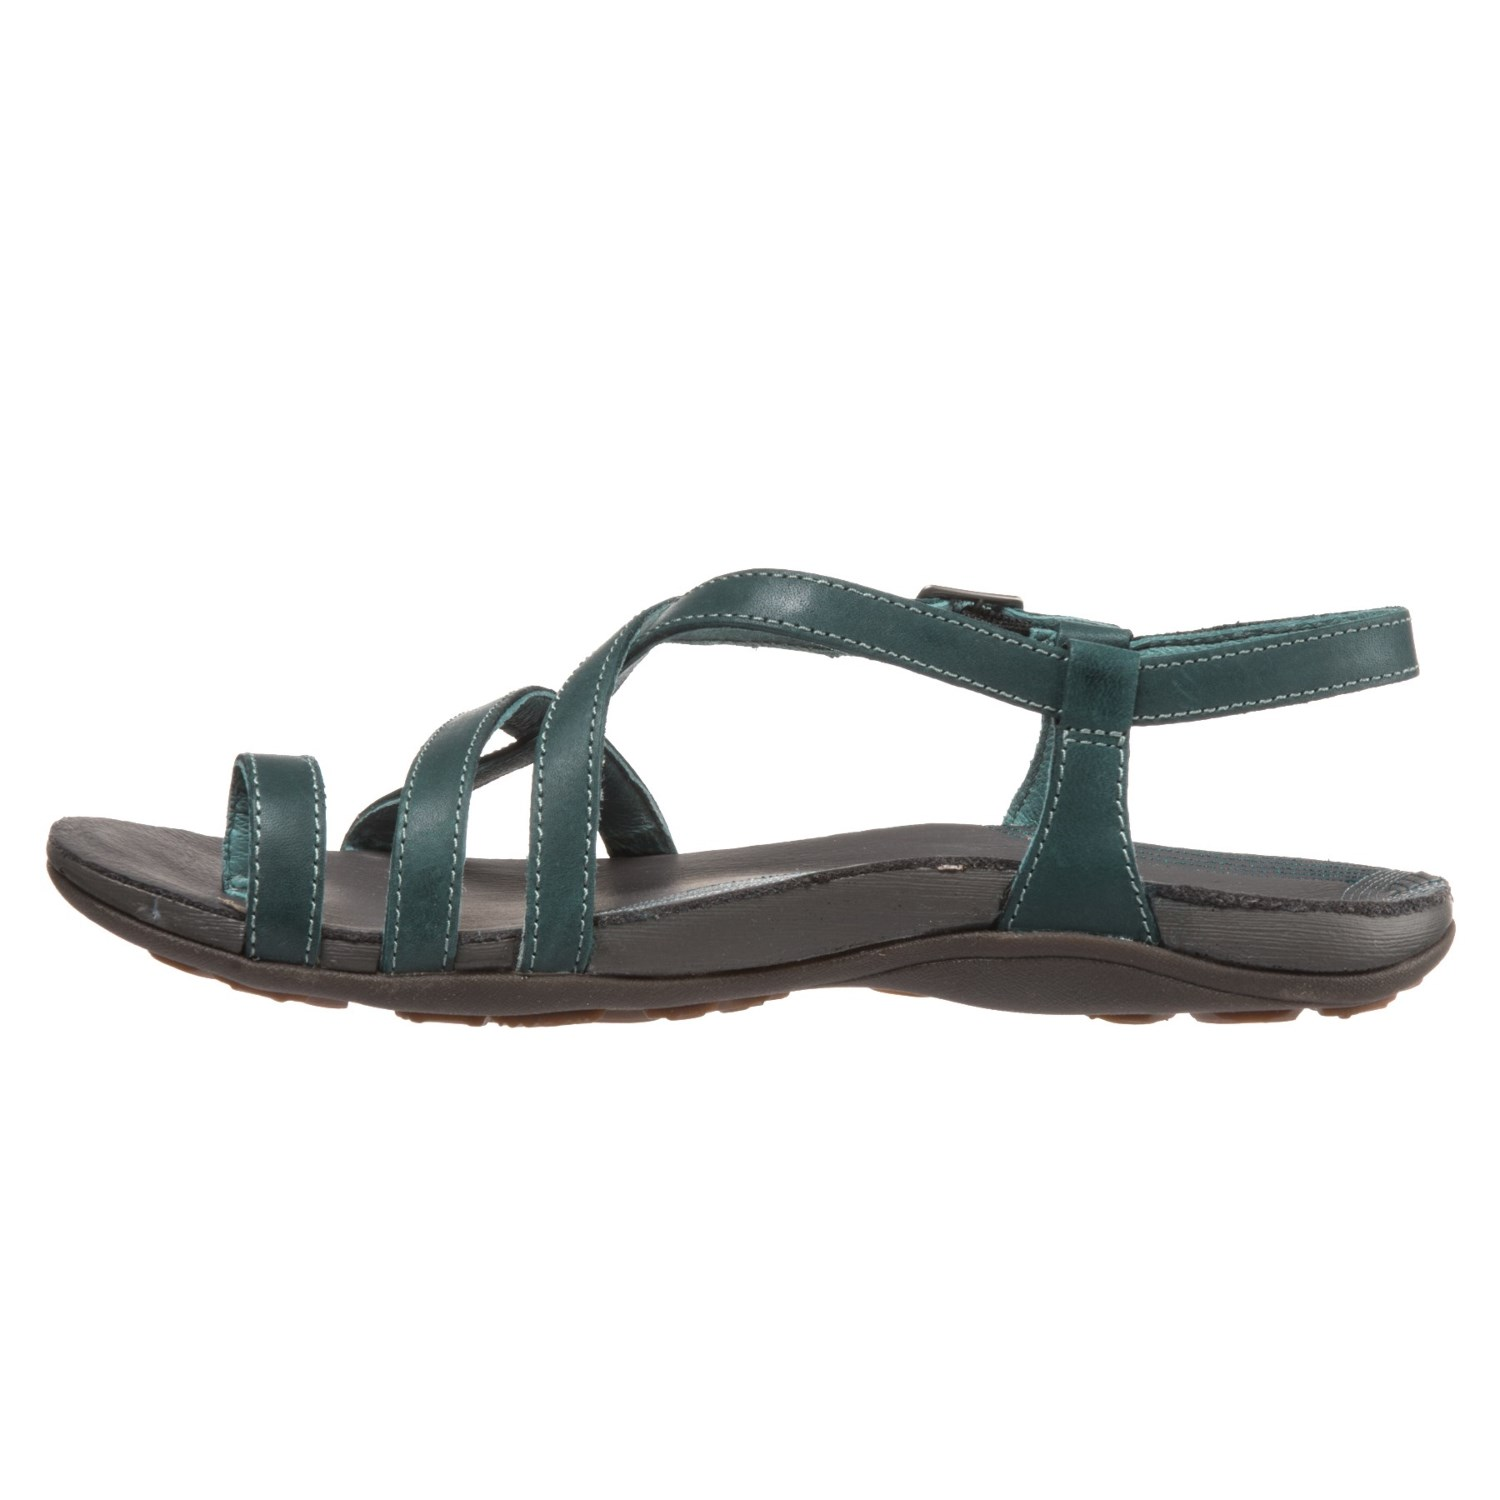 Chaco Dorra Leather Sandals For Women Save 69